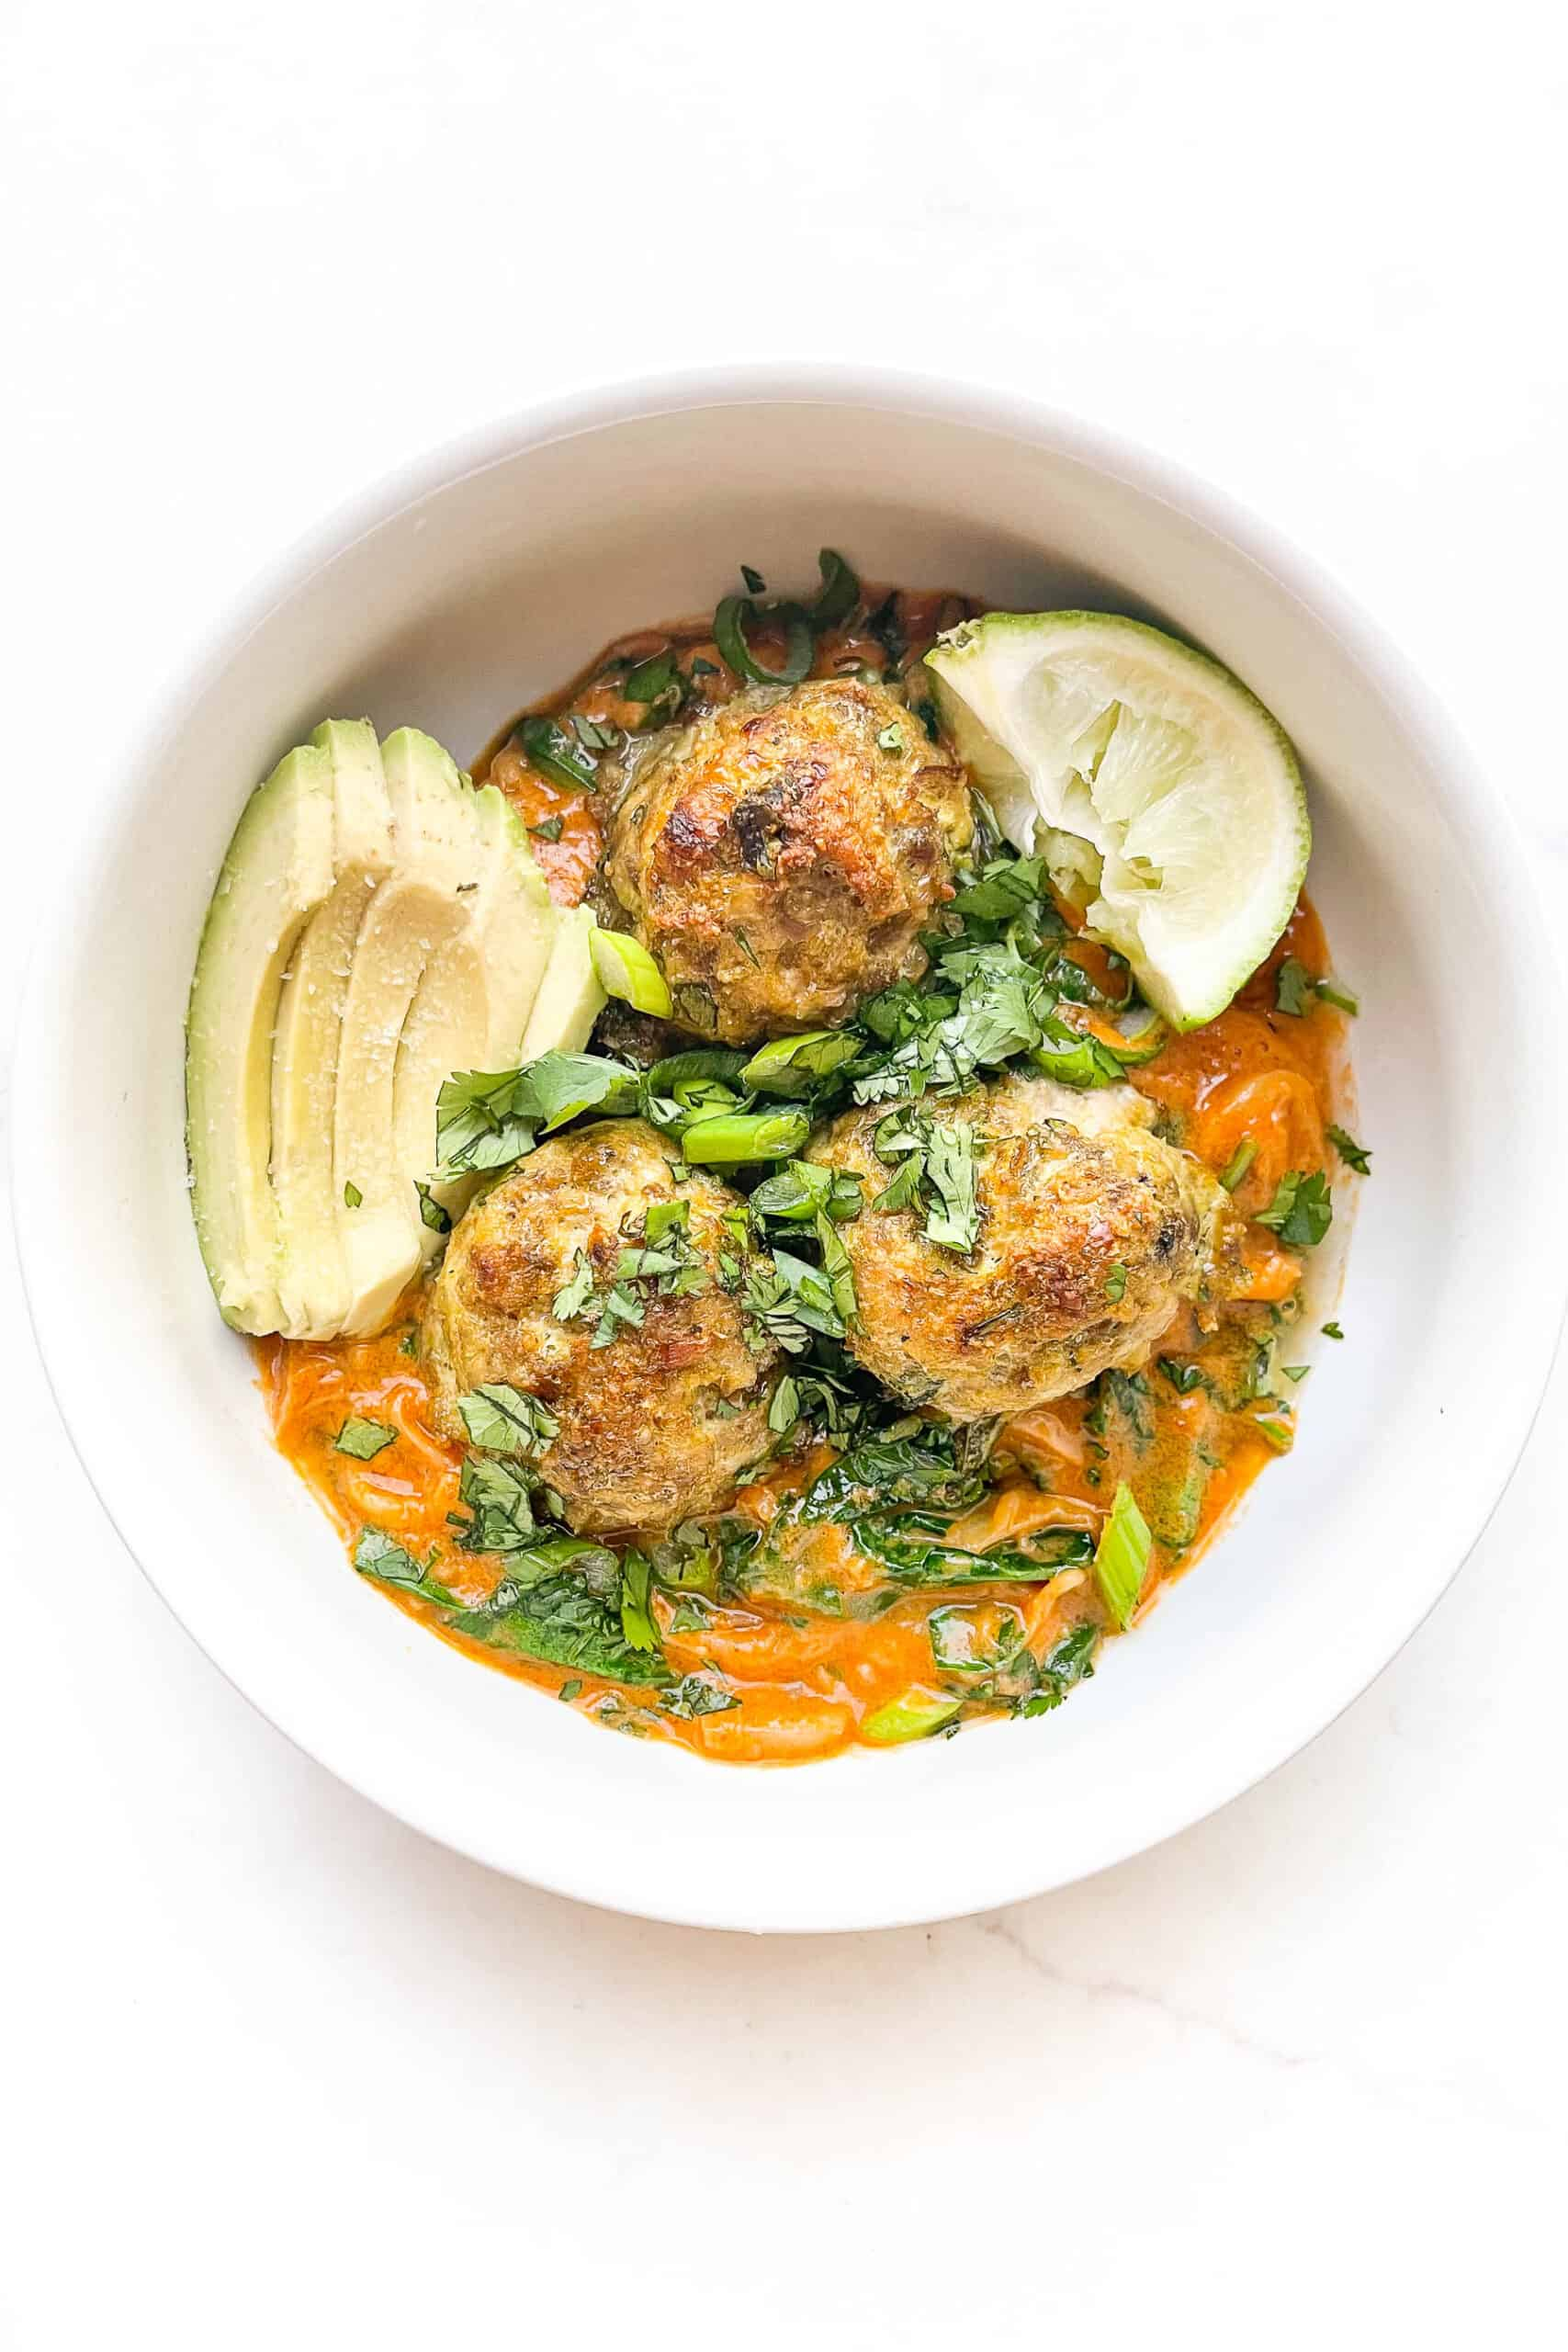 thai curry meatballs over noodles and curry sauce in a white bowl